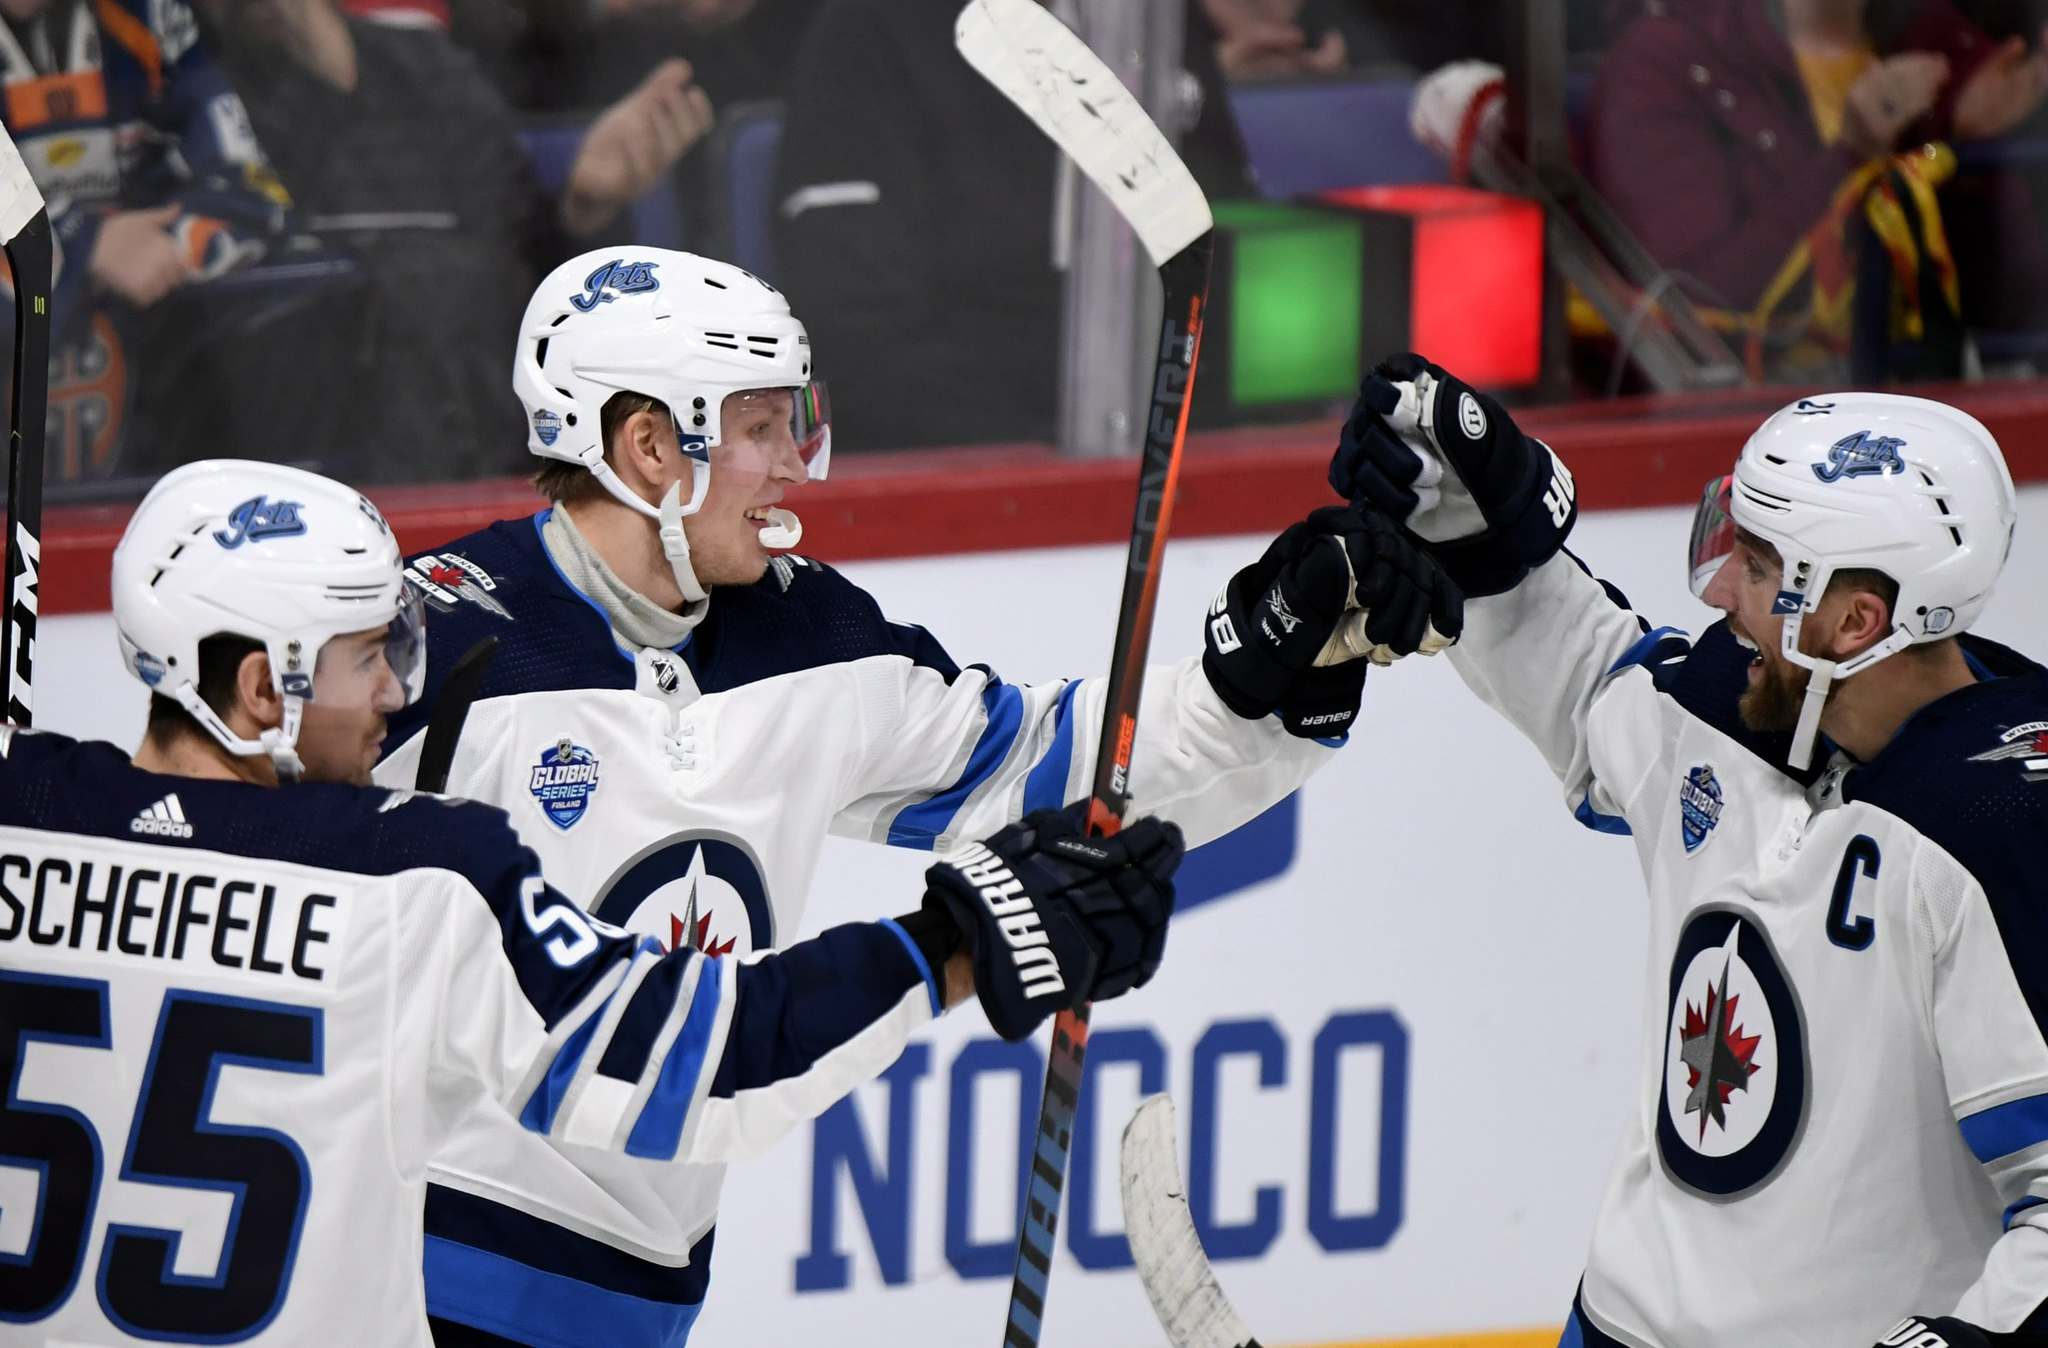 Patrik Laine celebrates a goal with Mark Scheifele (55) and Blake Wheeler in Helsinki, Finland last week. (Martti Kainulainen / Lehtikuva files)</p>